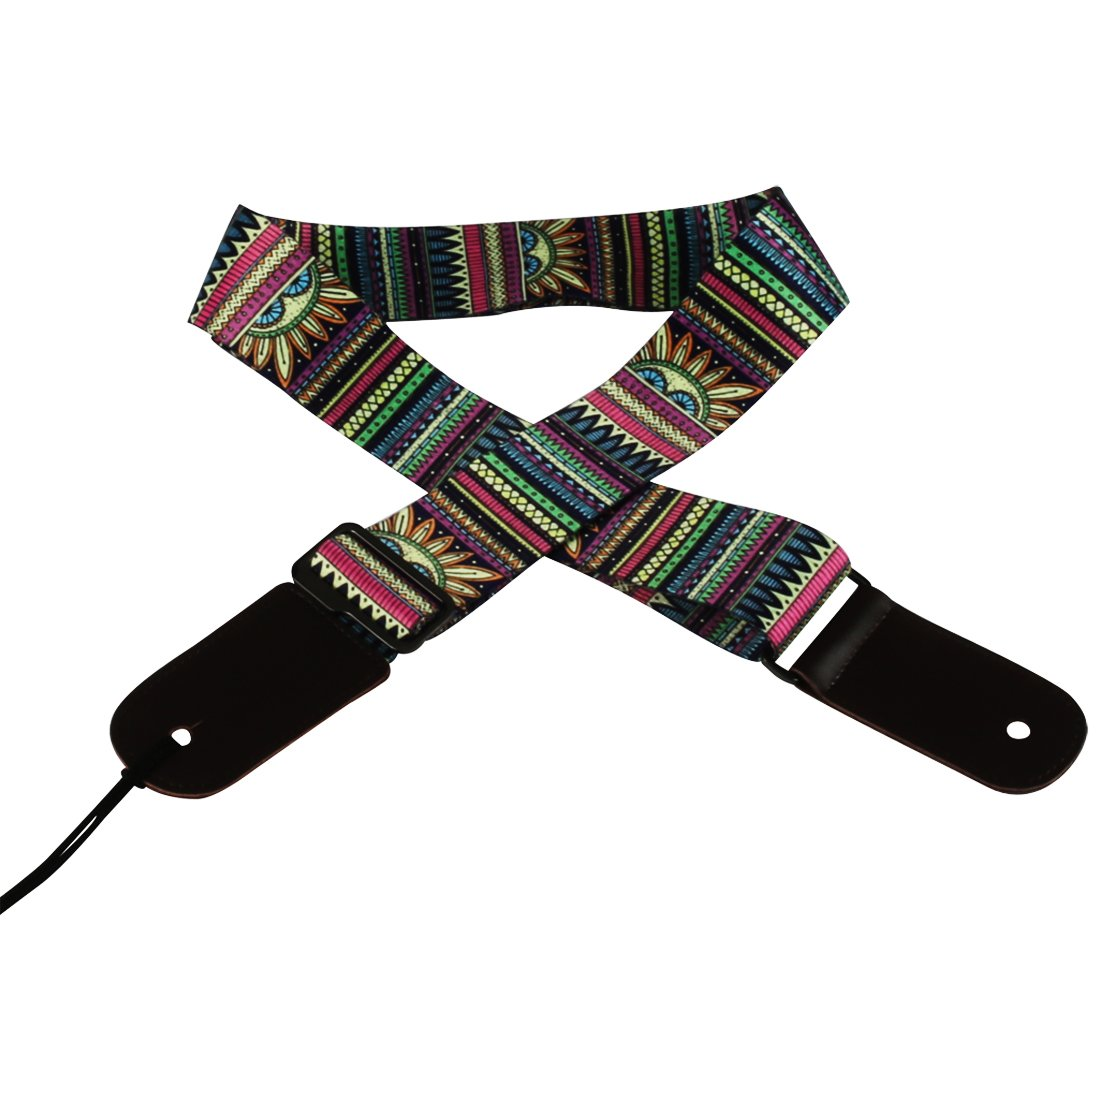 Jacquard Weave Hootenanny Style Electric Guitar Strap Acoustic Strap Bass Strap Ukulele Strap with Tie Leather Ends C11